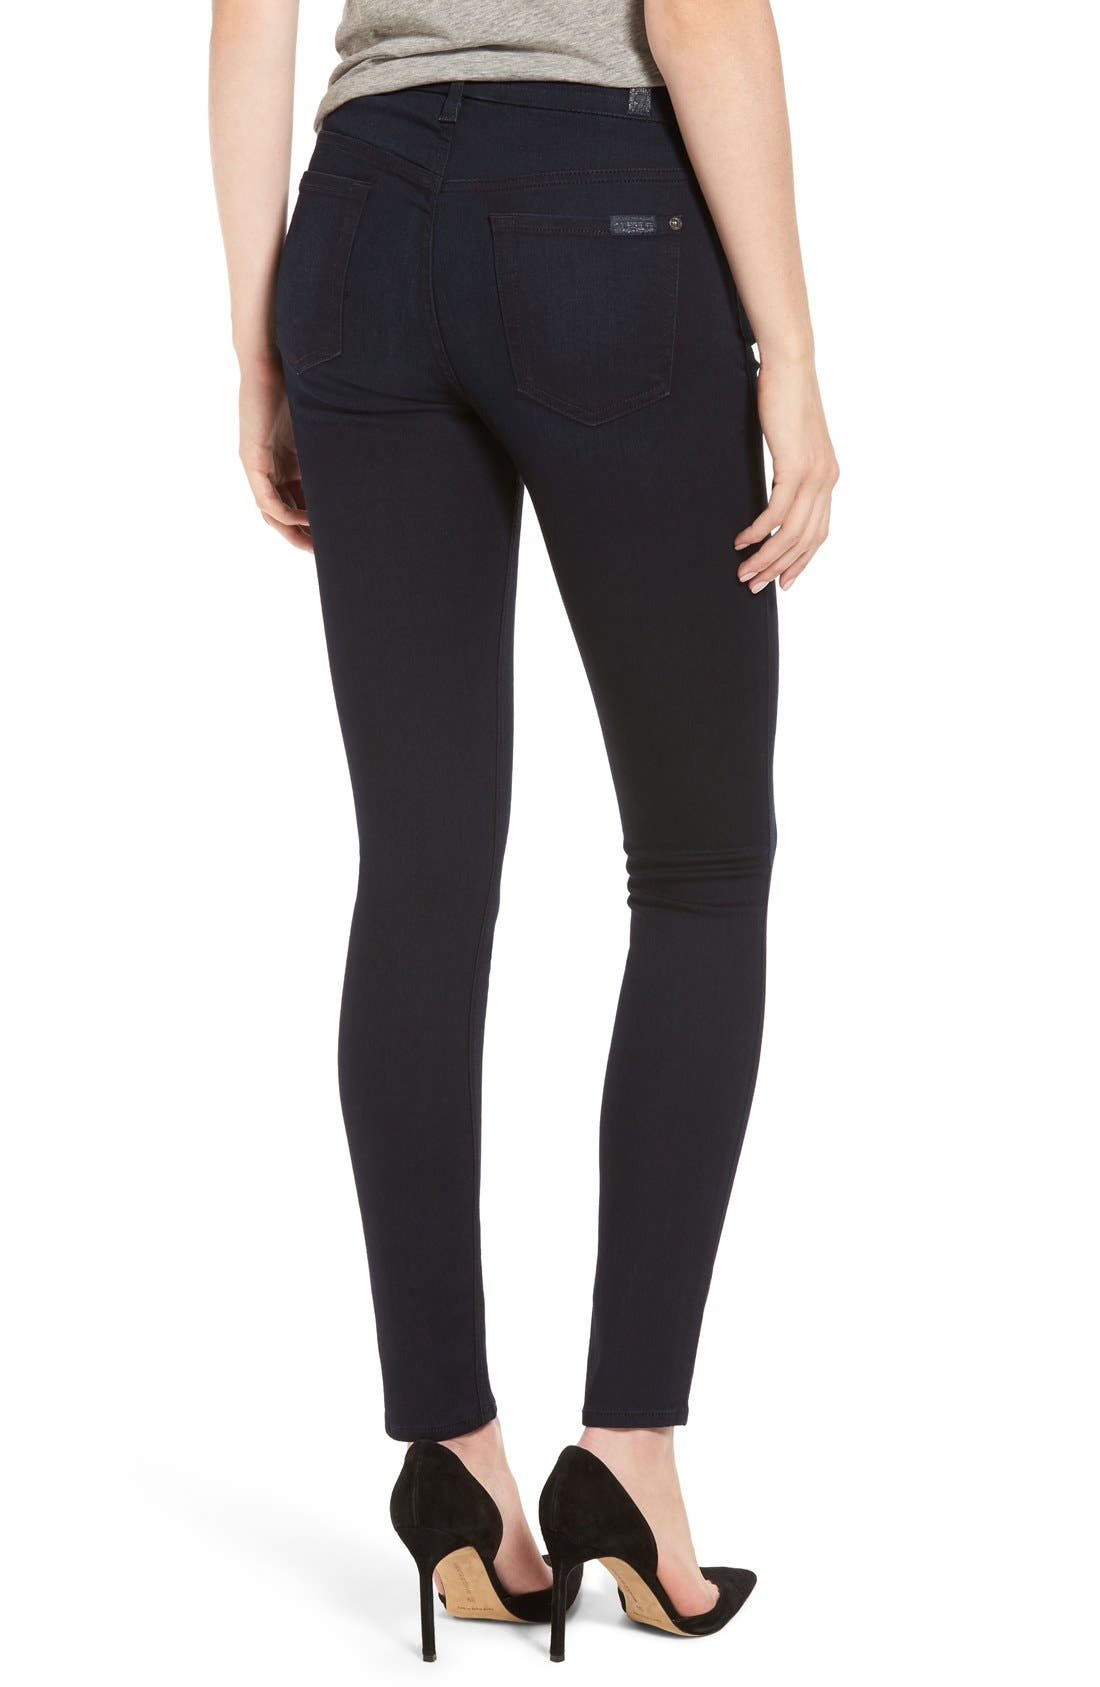 7 For All Mankind b(air) High Waist Skinny Jeans,                             Alternate thumbnail 2, color,                             Blue/ Black River Thames